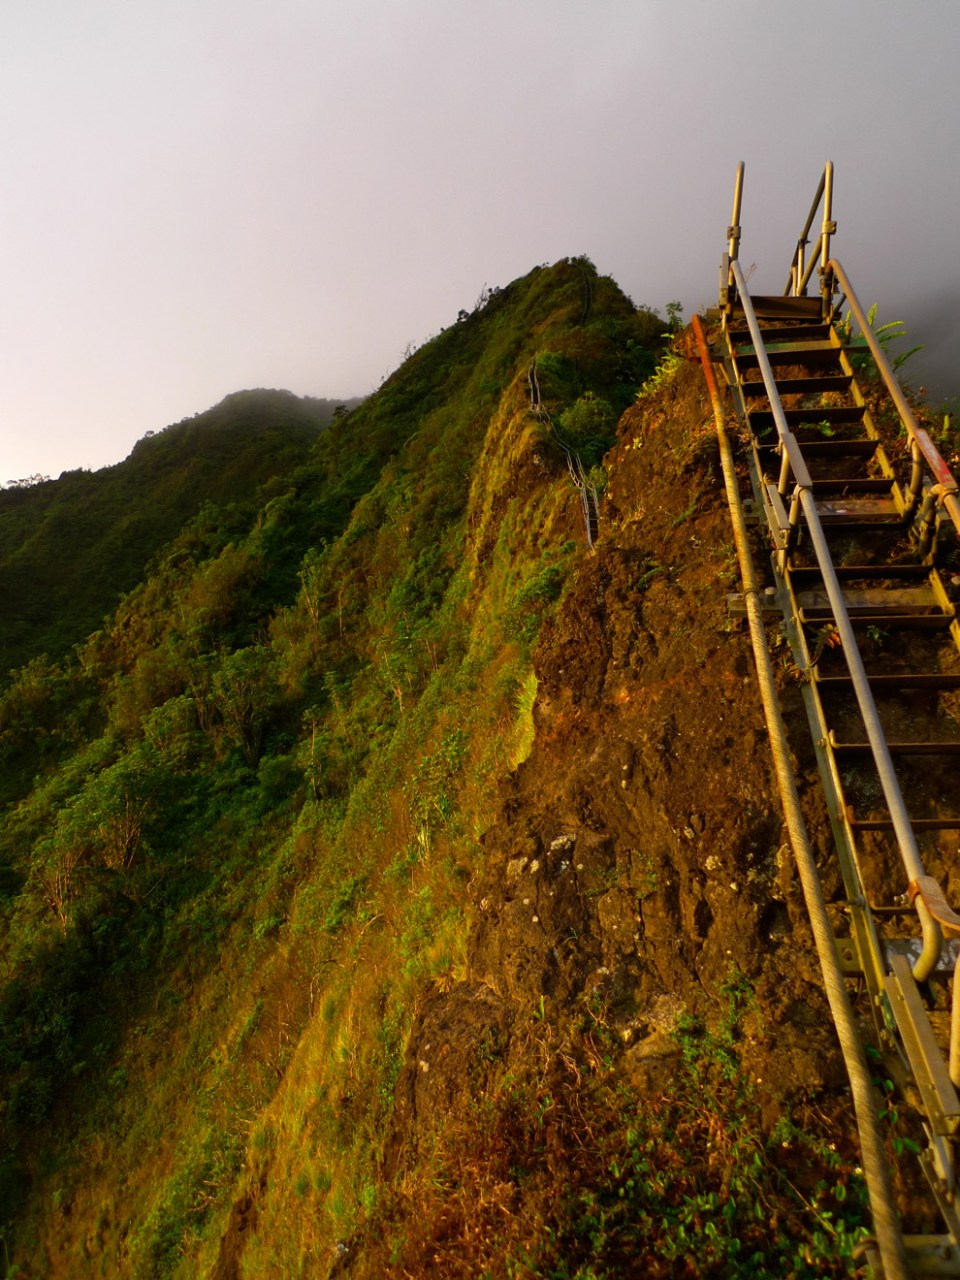 You can see drop offs here on the ridge. Image credit: unrealhawaii.com